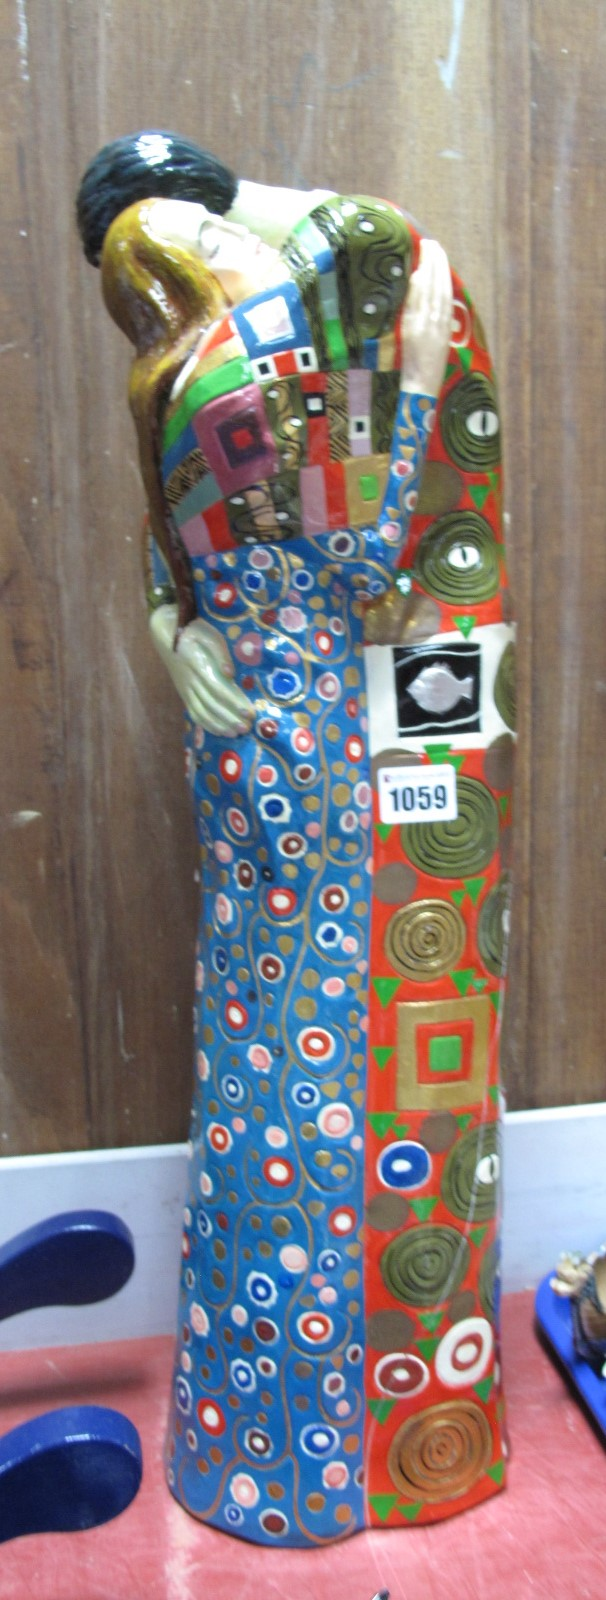 Lot 1059 - Large Pottery Figure Group of Courting Couple, in the style of Gustav Klimt, 57cm high (cracked);